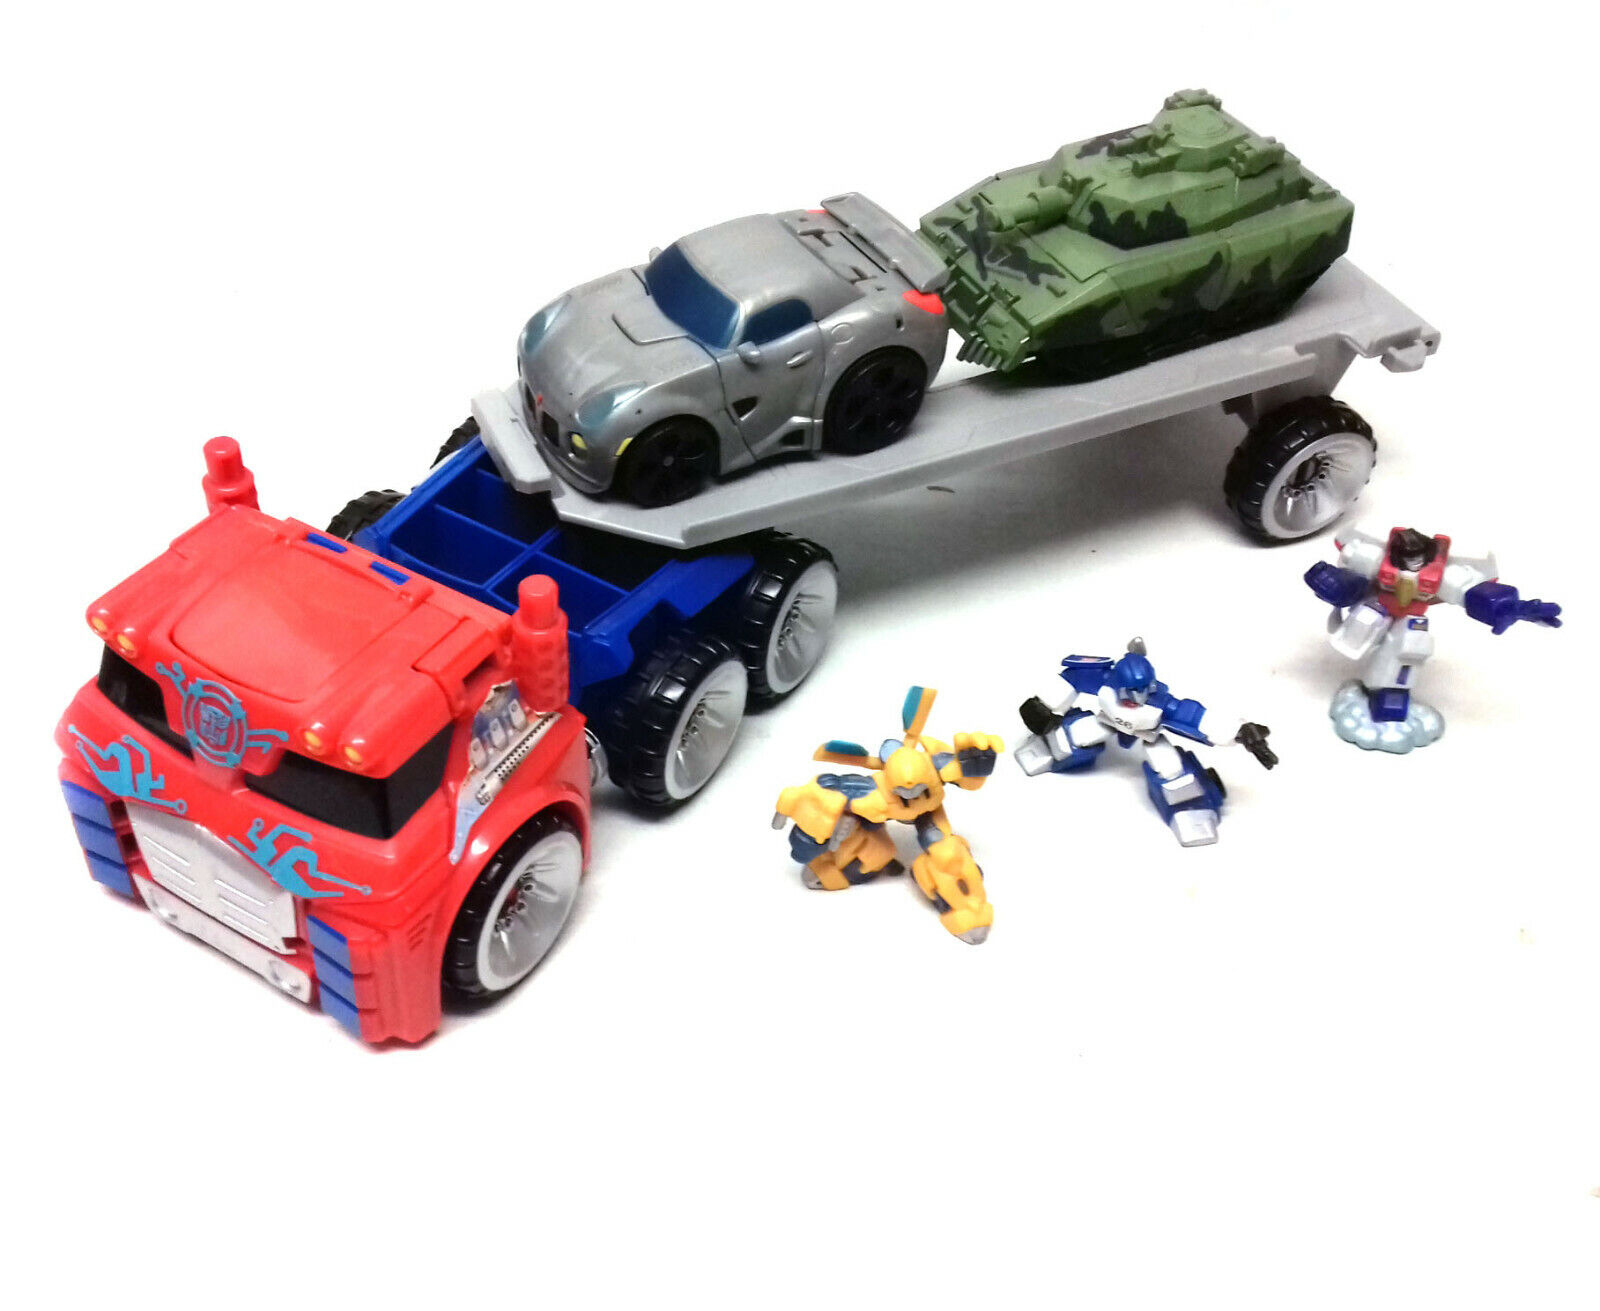 Transformers Robot Heroes Squad Toys  OPTIMUS PRIME PLAYSET with Figures & Cars